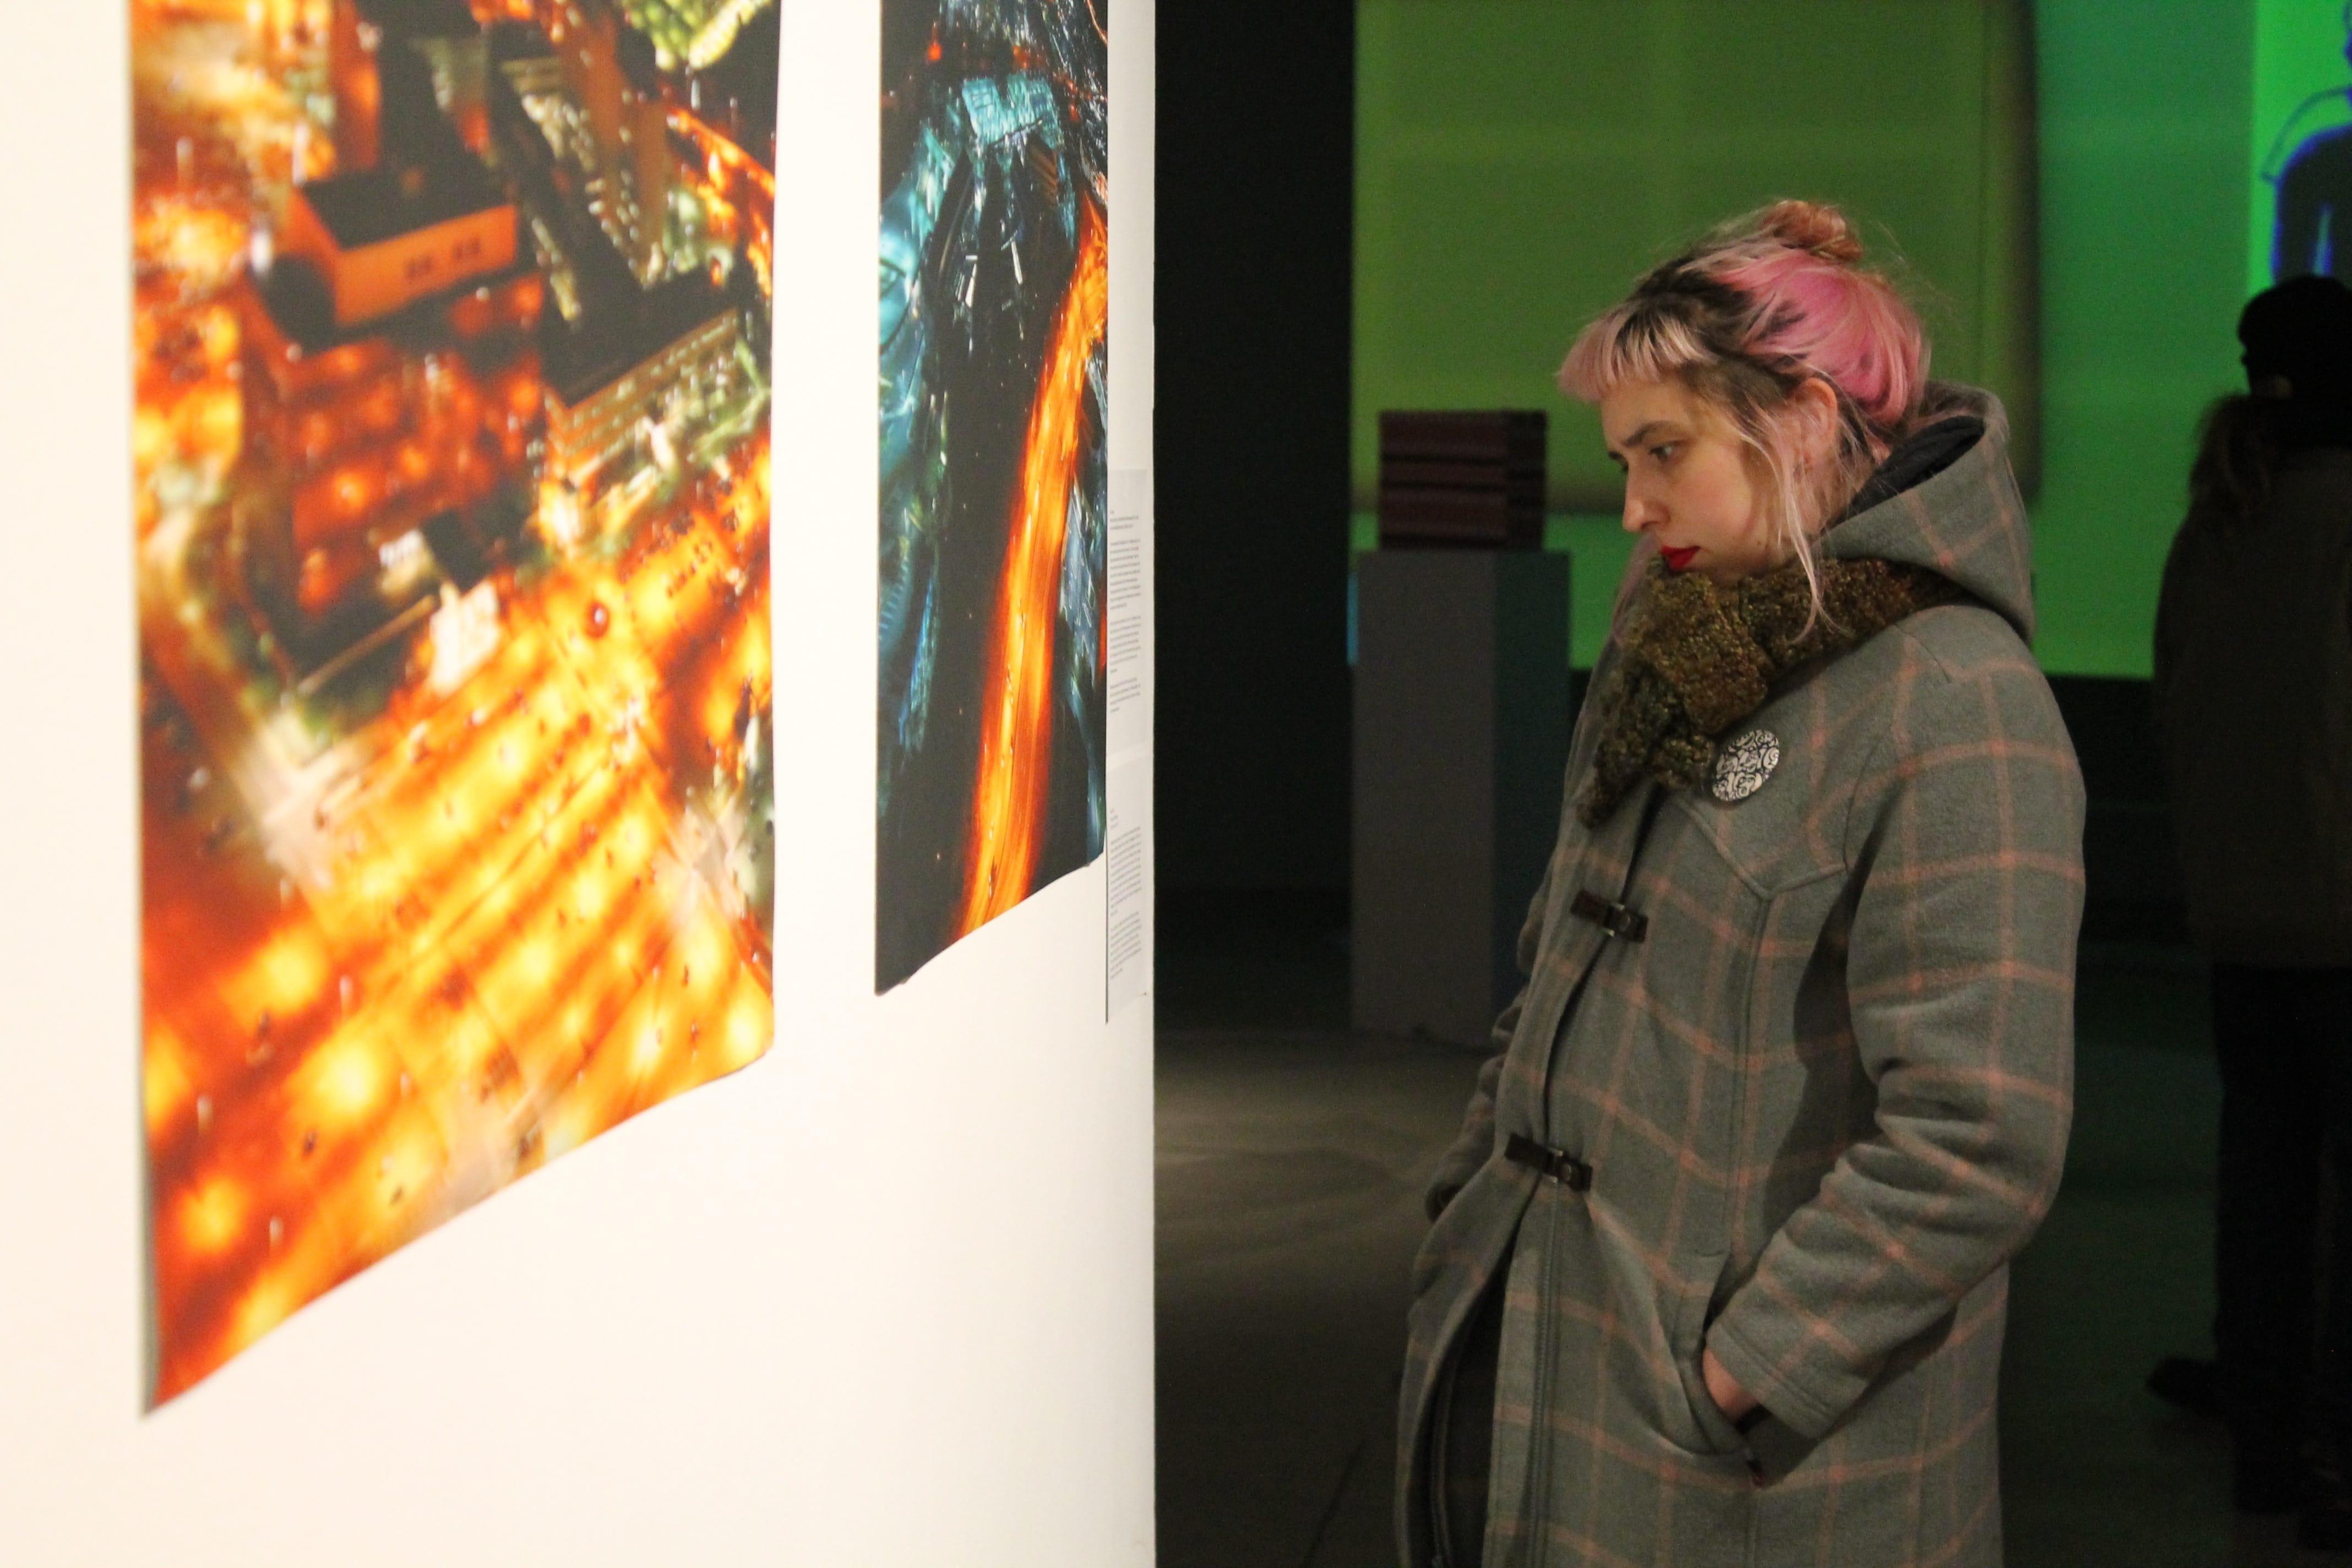 A woman looking at Trevor Paglen's night time photographs on the wall.